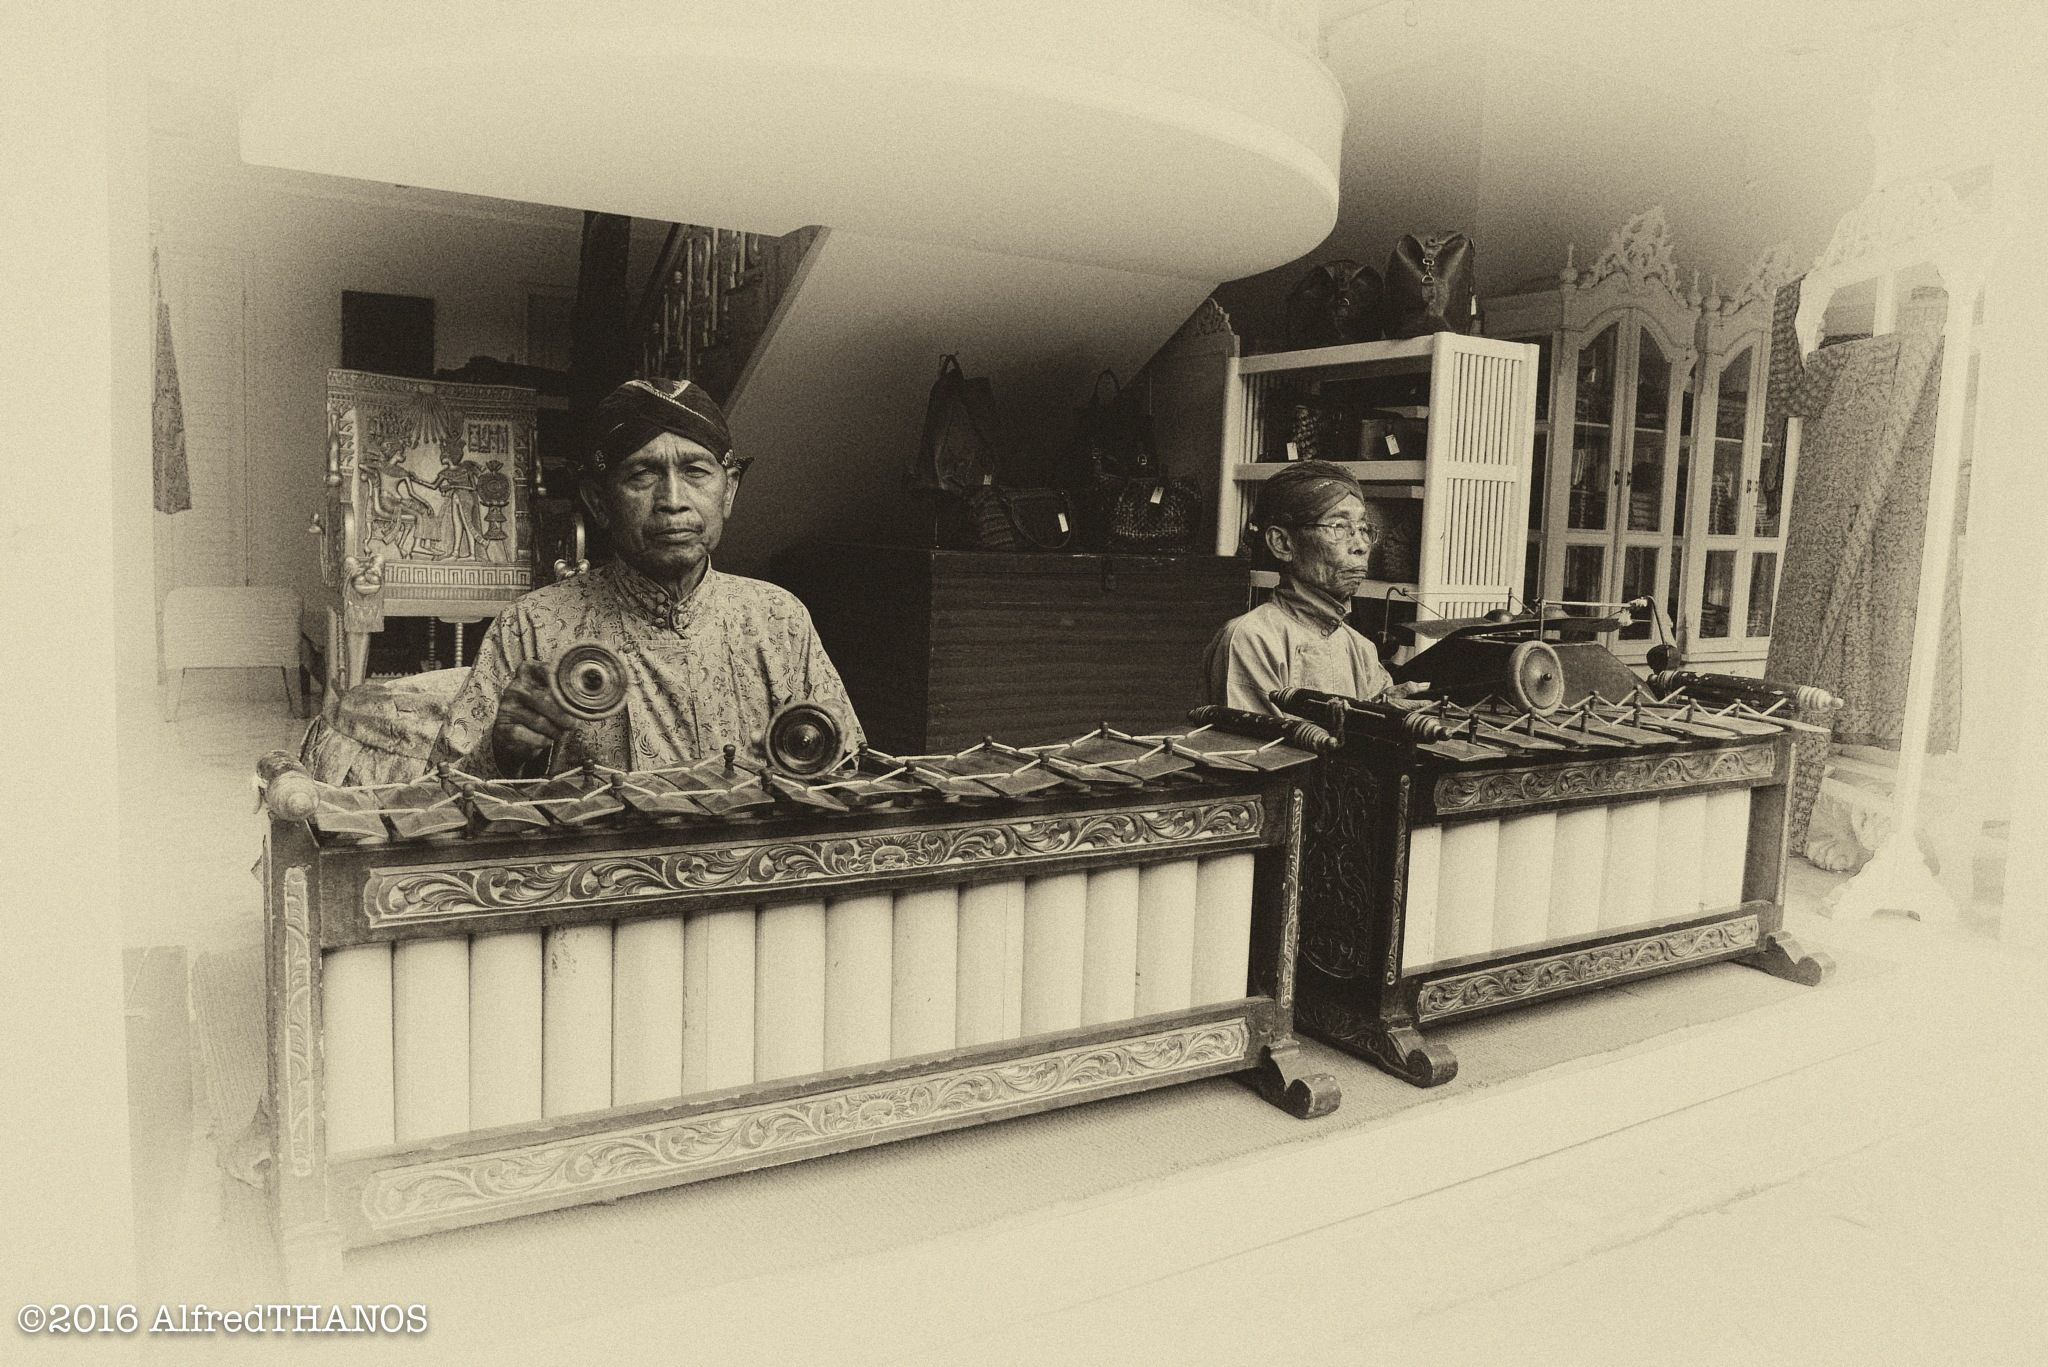 gamelan players 3 by alfredthanos